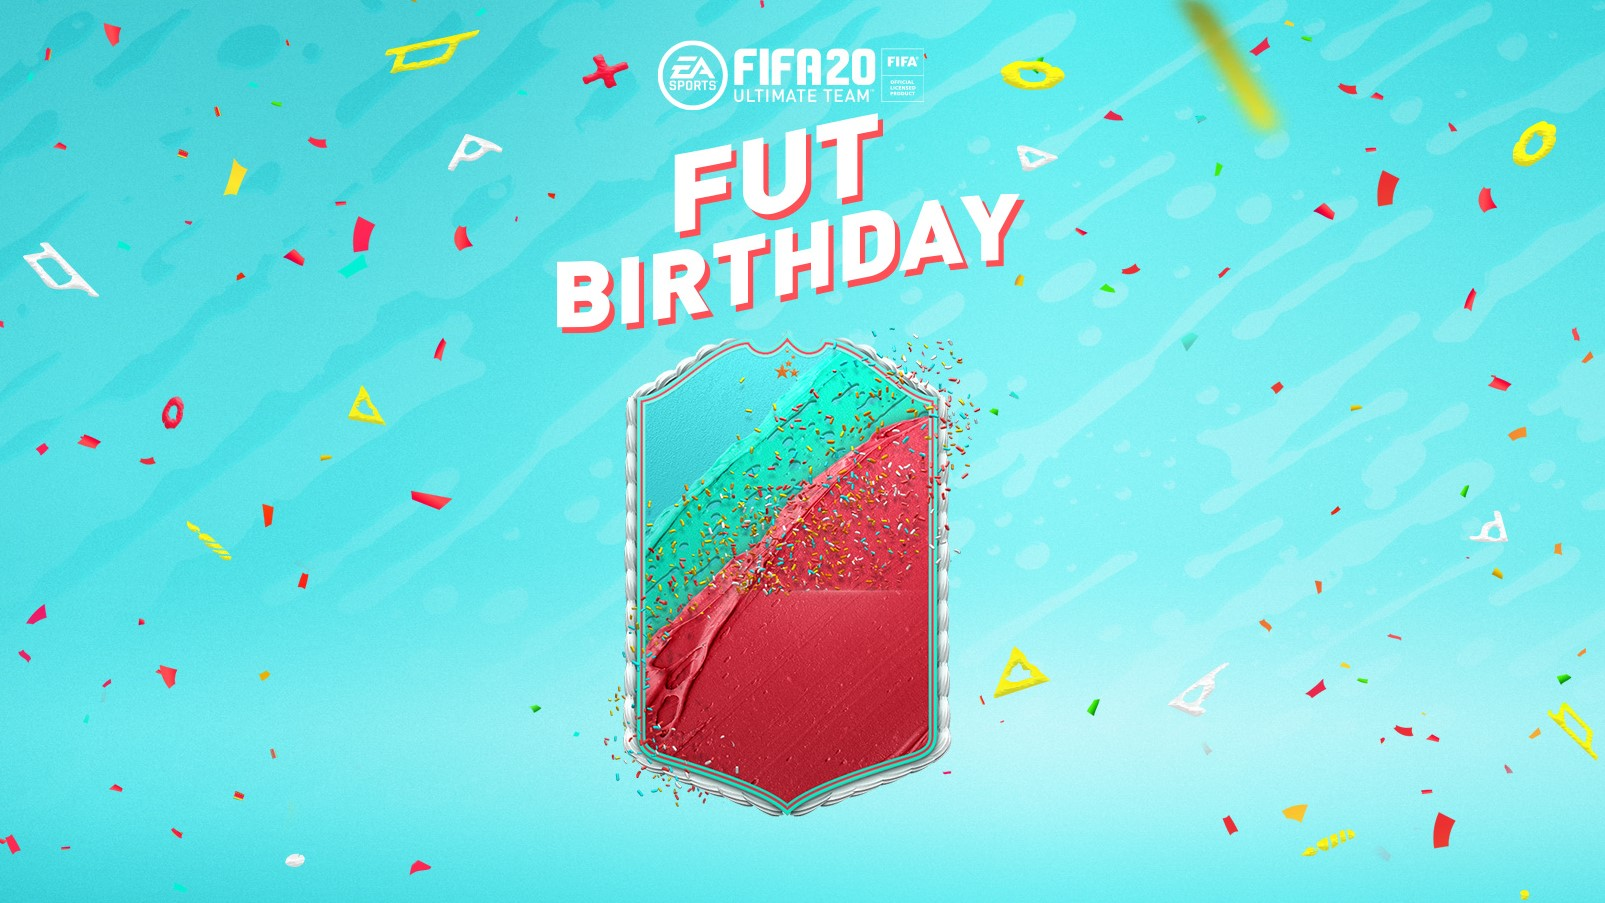 FIFA 20 FUT Birthday